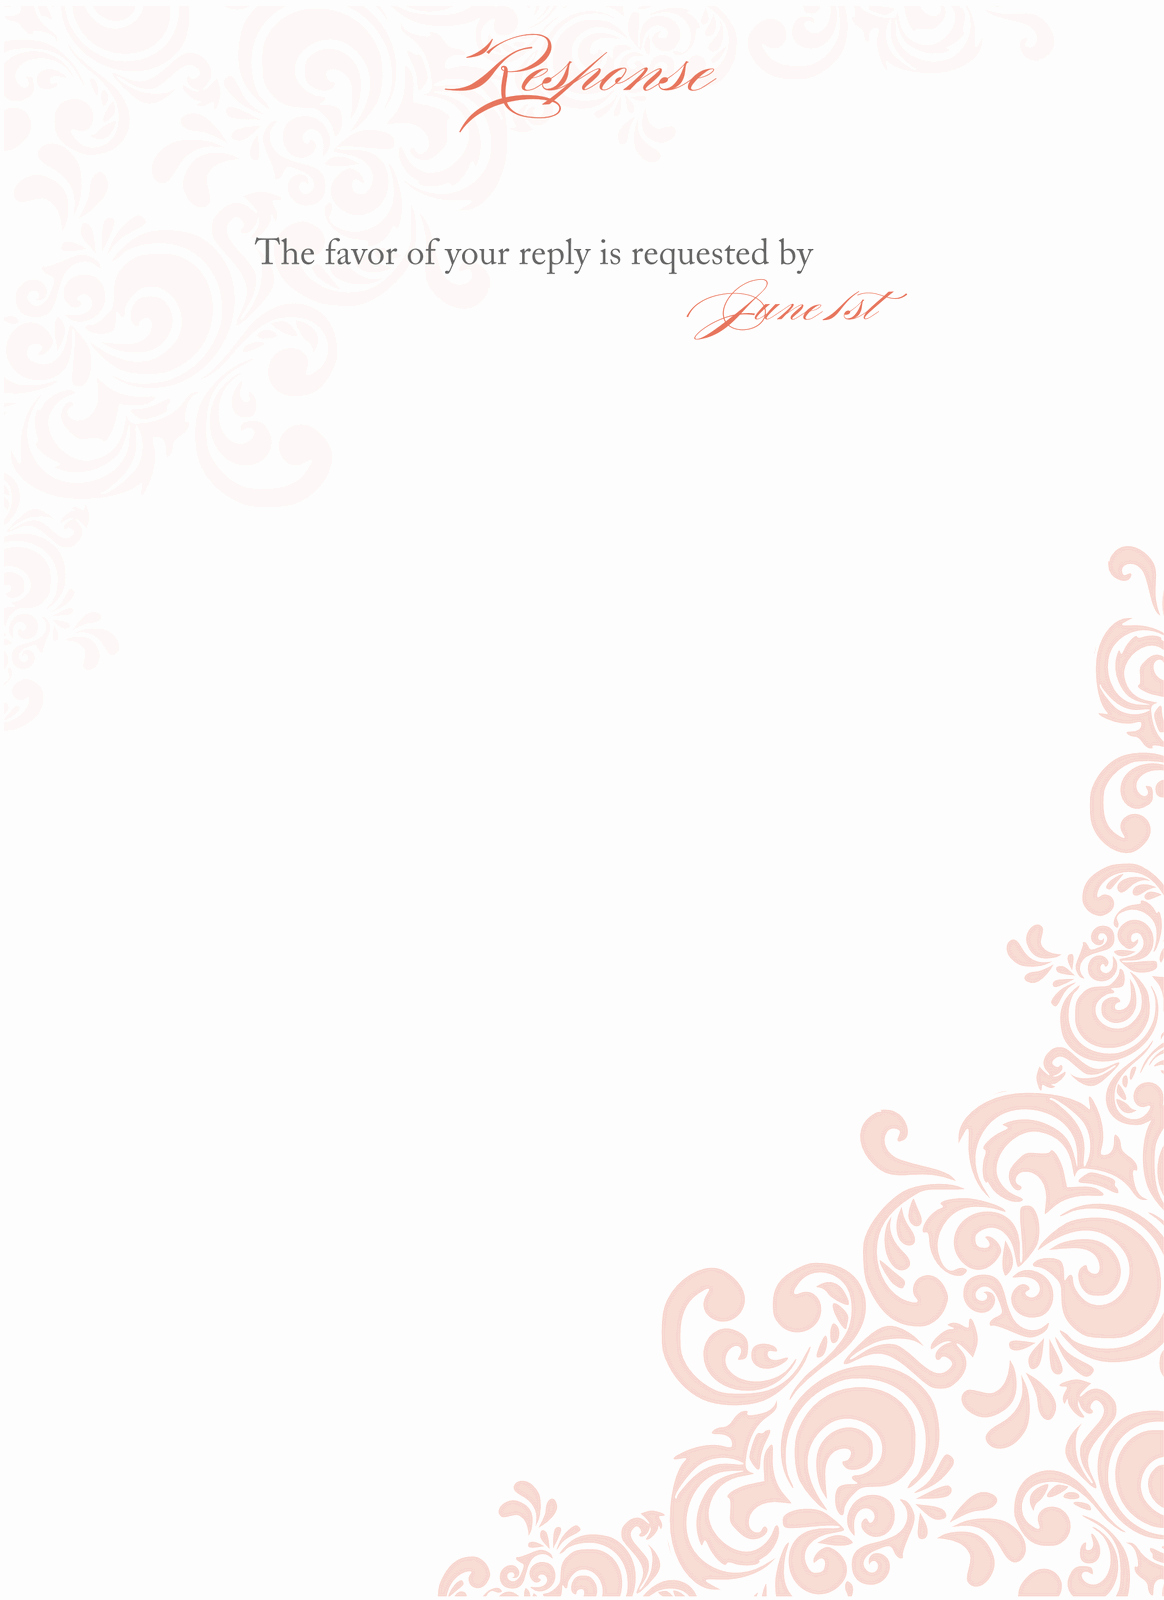 Wedding Invitation Templates Downloads Lovely Floral Blank Wedding Invitation Templates